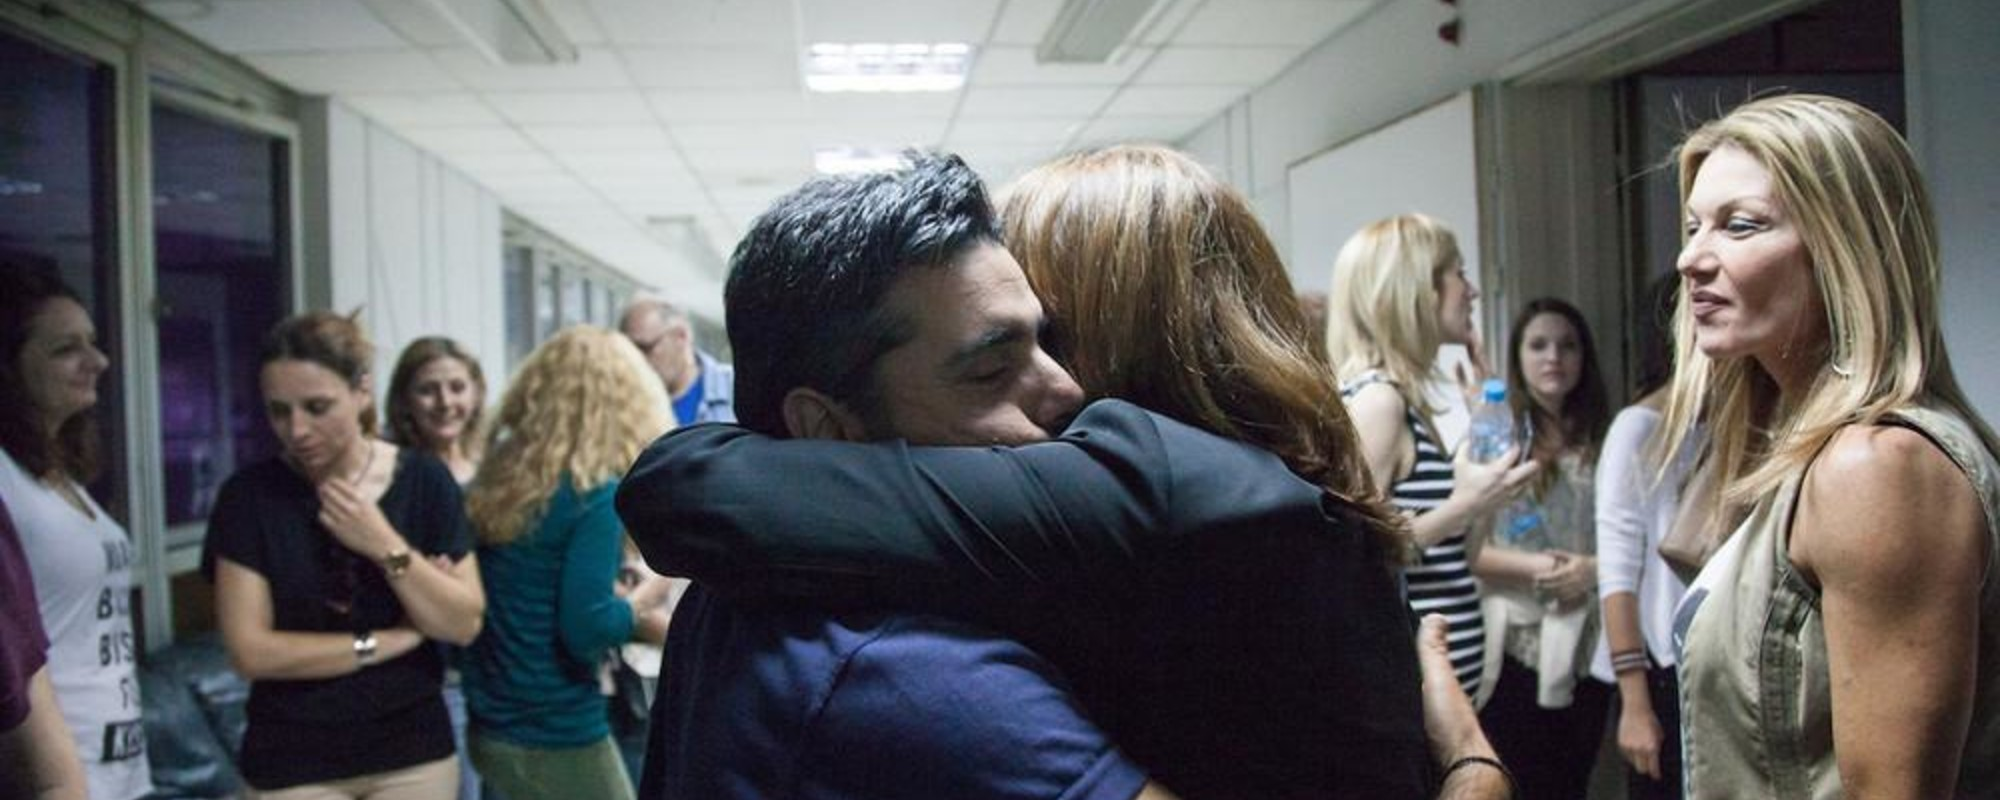 Photos of Greek People Celebrating the Reinstatement of the Country's State Broadcaster